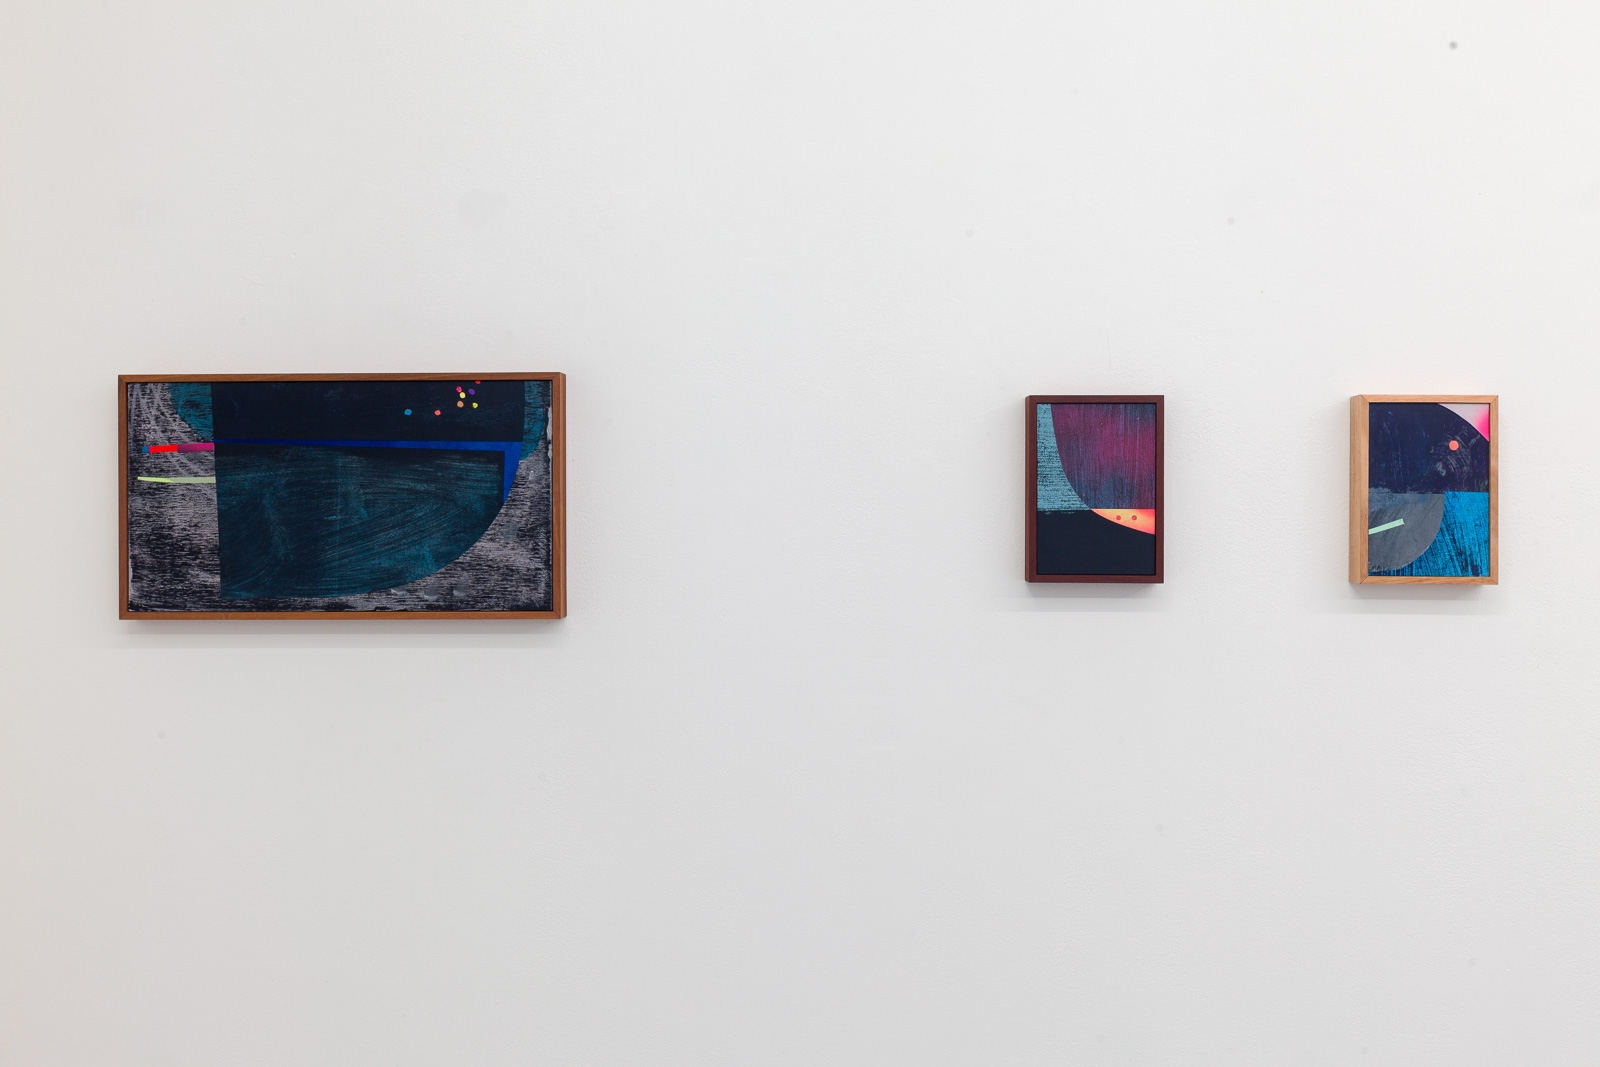 Kirsten Duncombe, installation view image